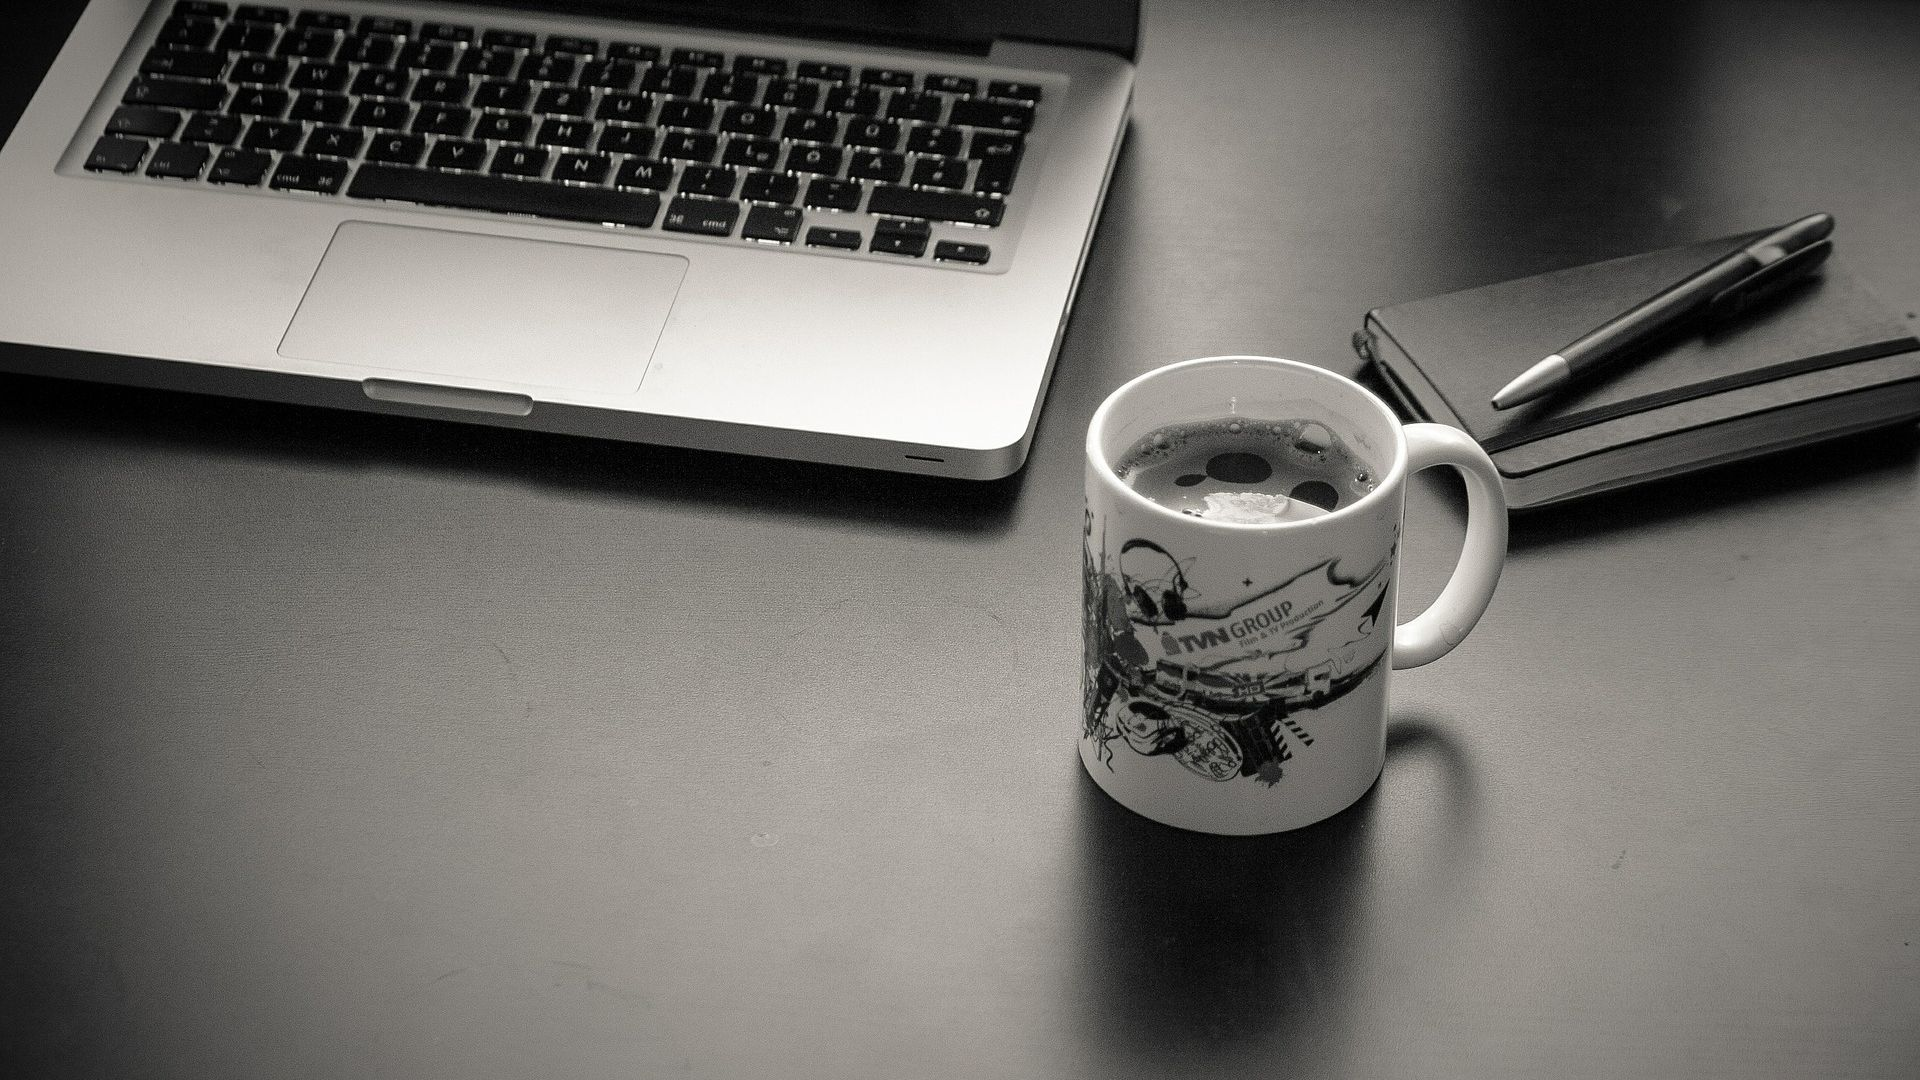 Computer Workplace Black And White Hd Wallpaper Coffee And Laptop Hd 1920x1080 Download Hd Wallpaper Wallpapertip